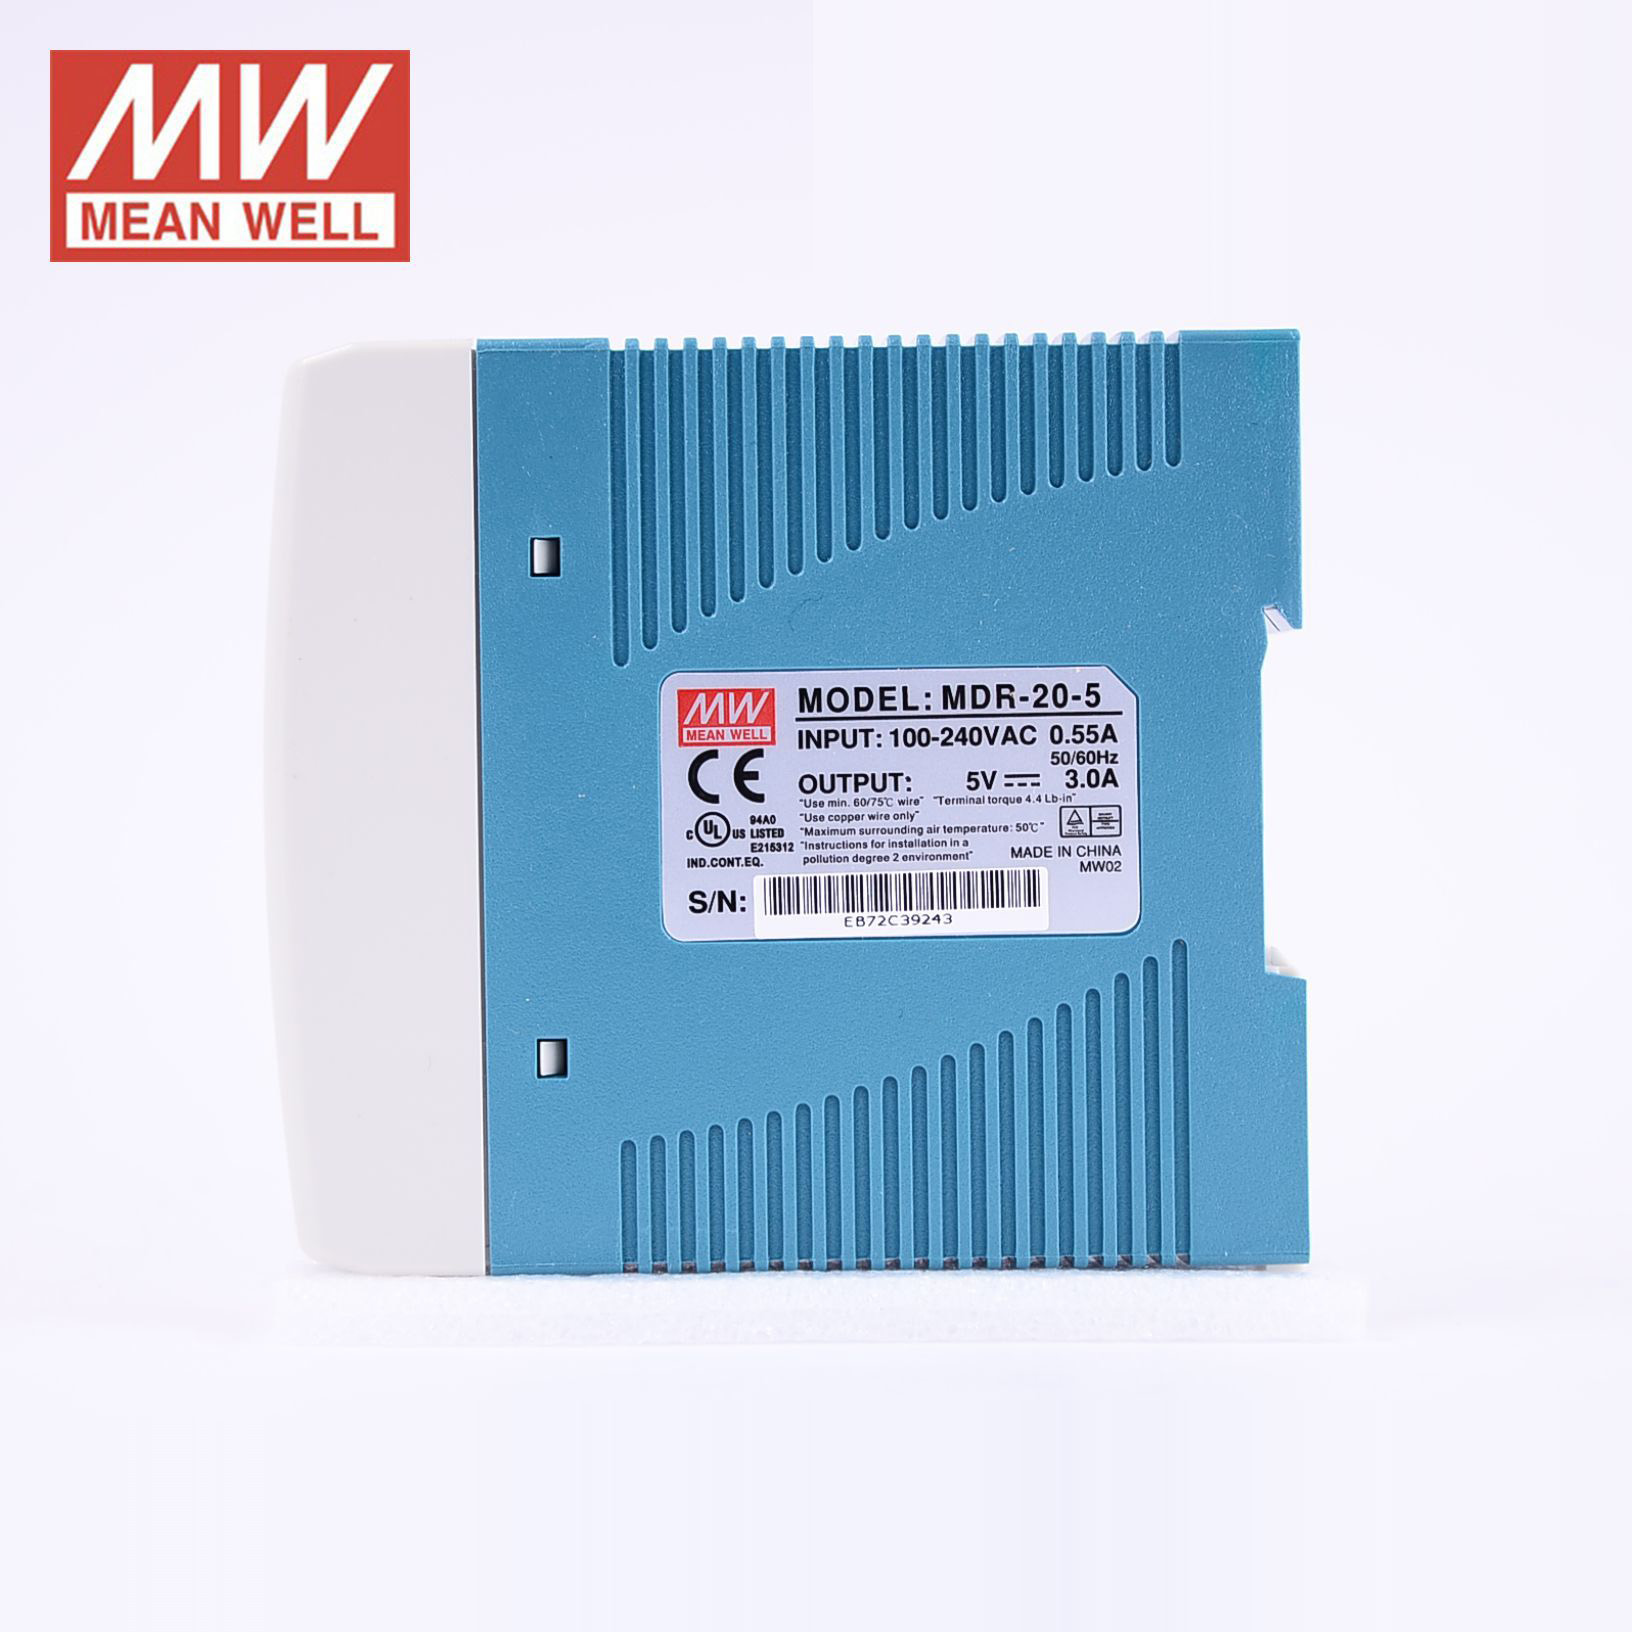 Mean Well Din-Rail power supply 15W 5V 3A ; MeanWell MDR-20-5